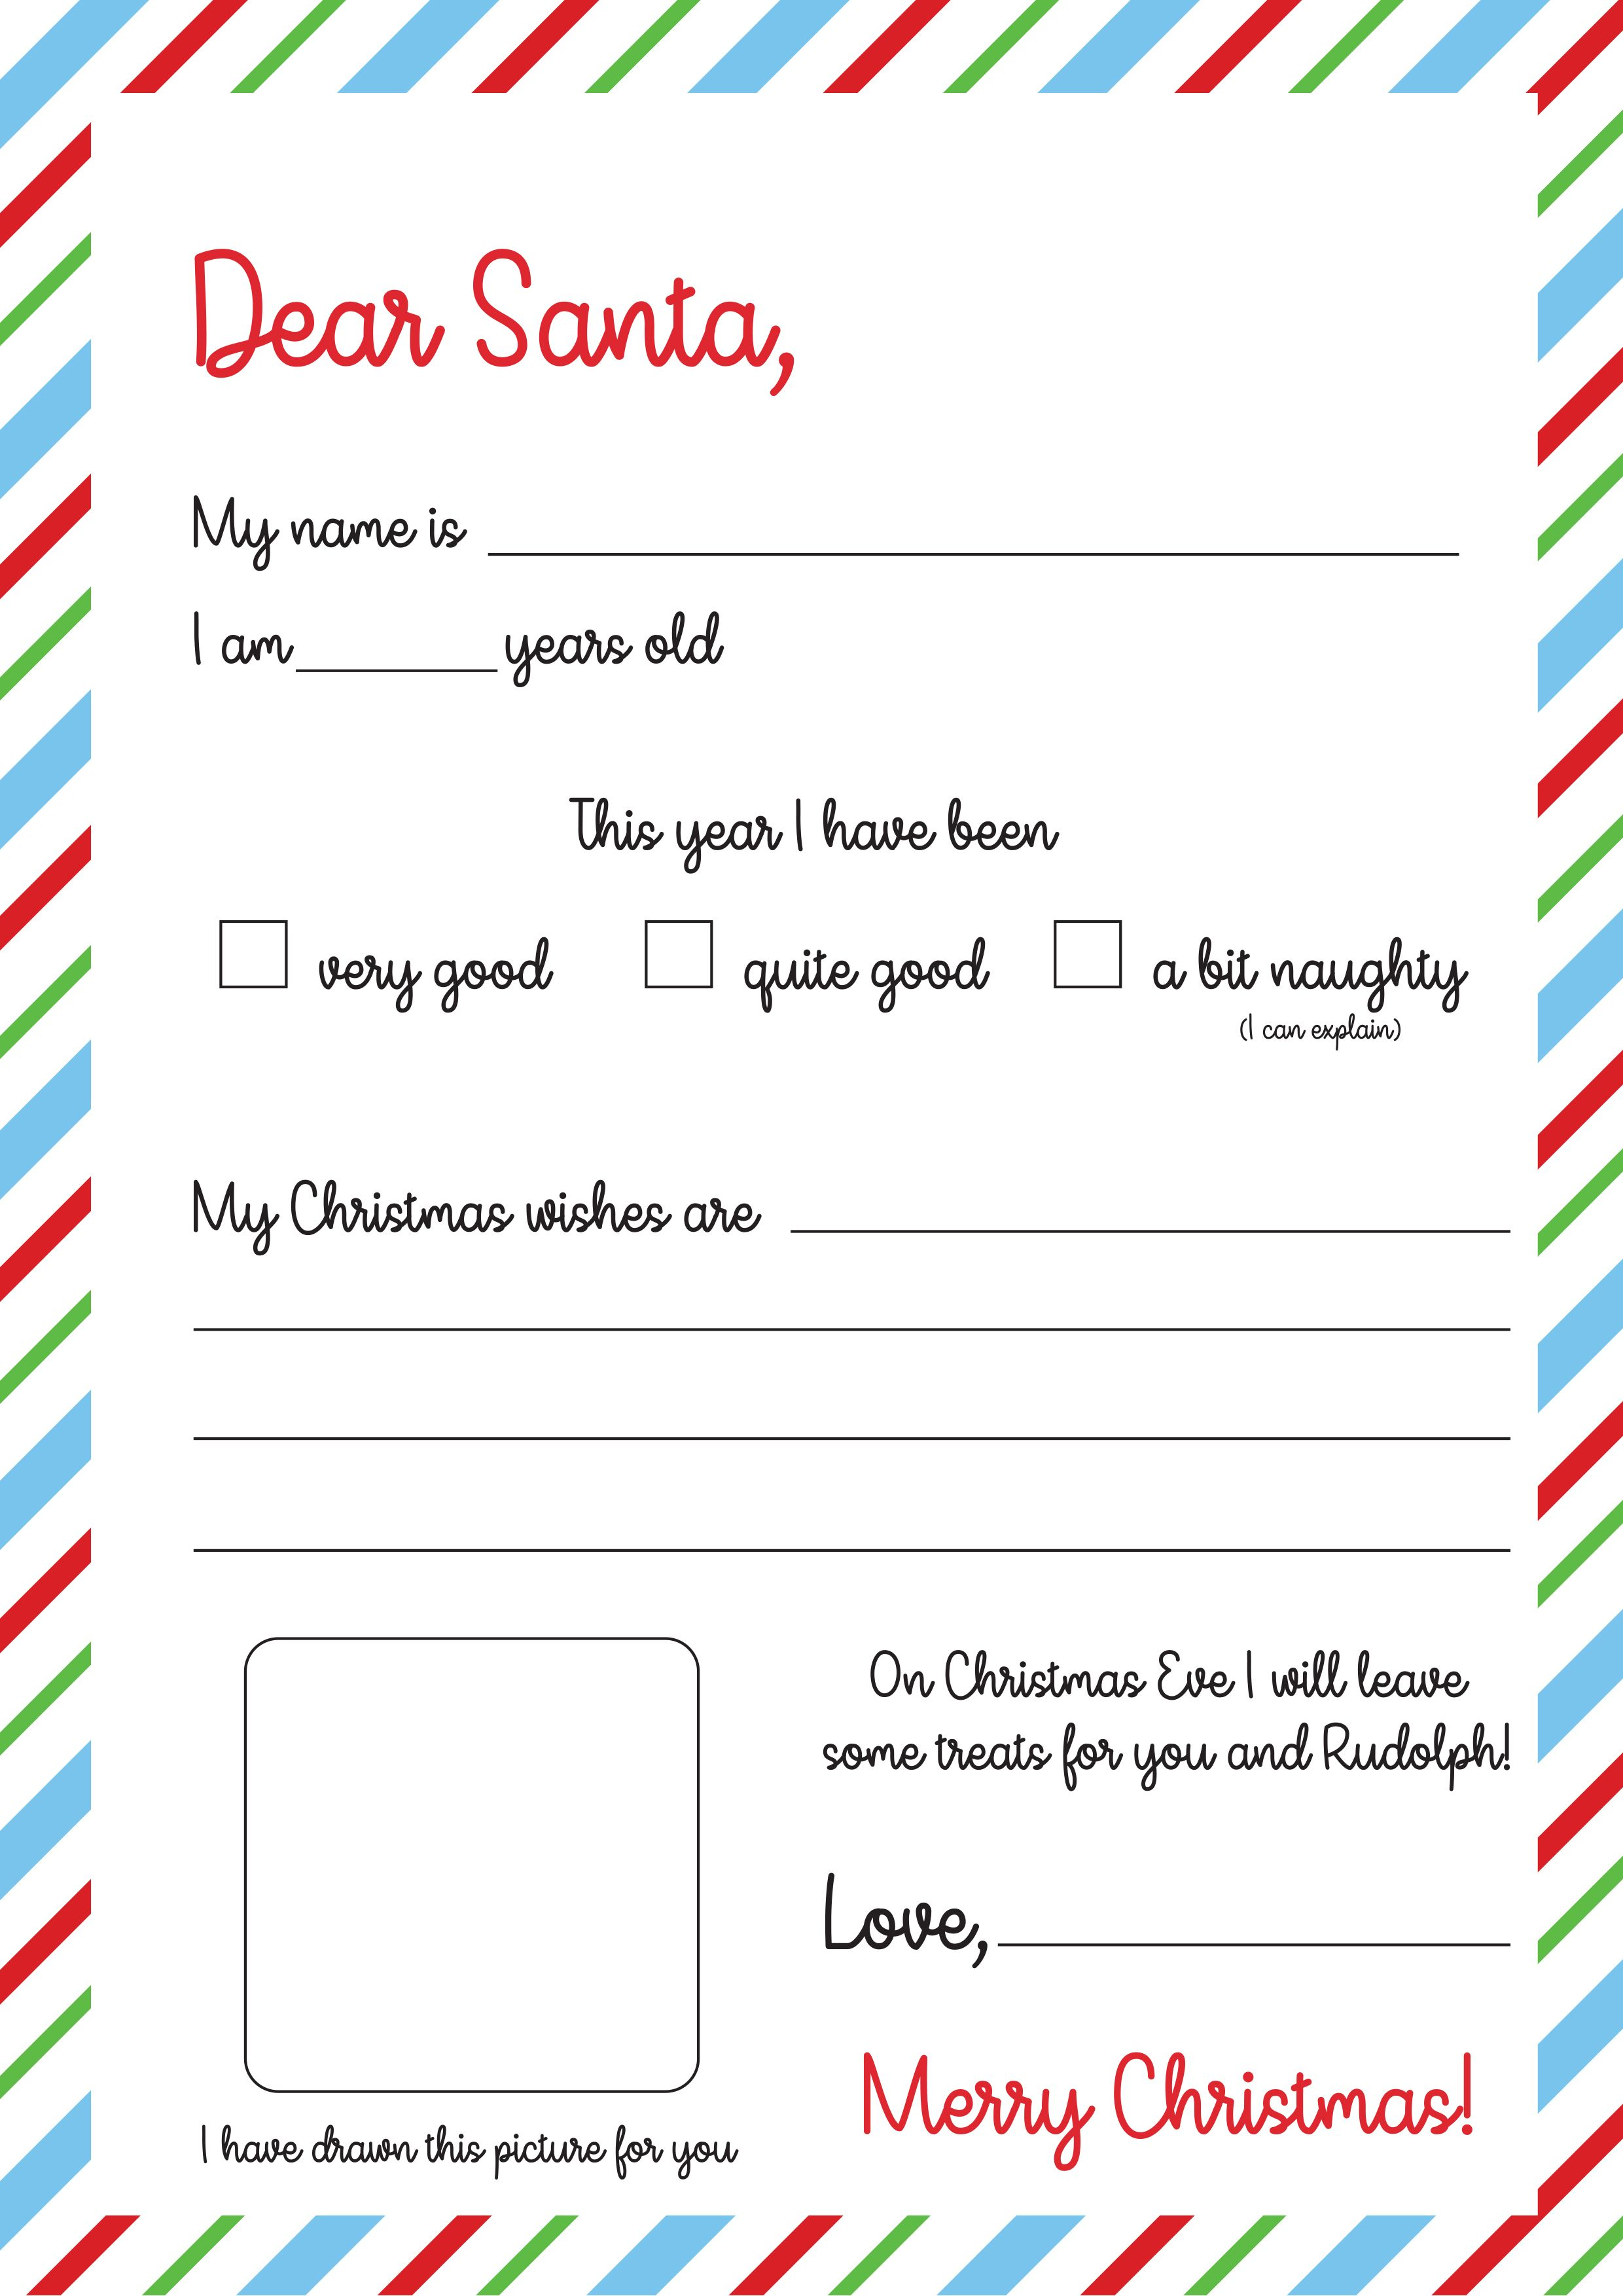 Santa Letters to Print at Home Christmas letter template